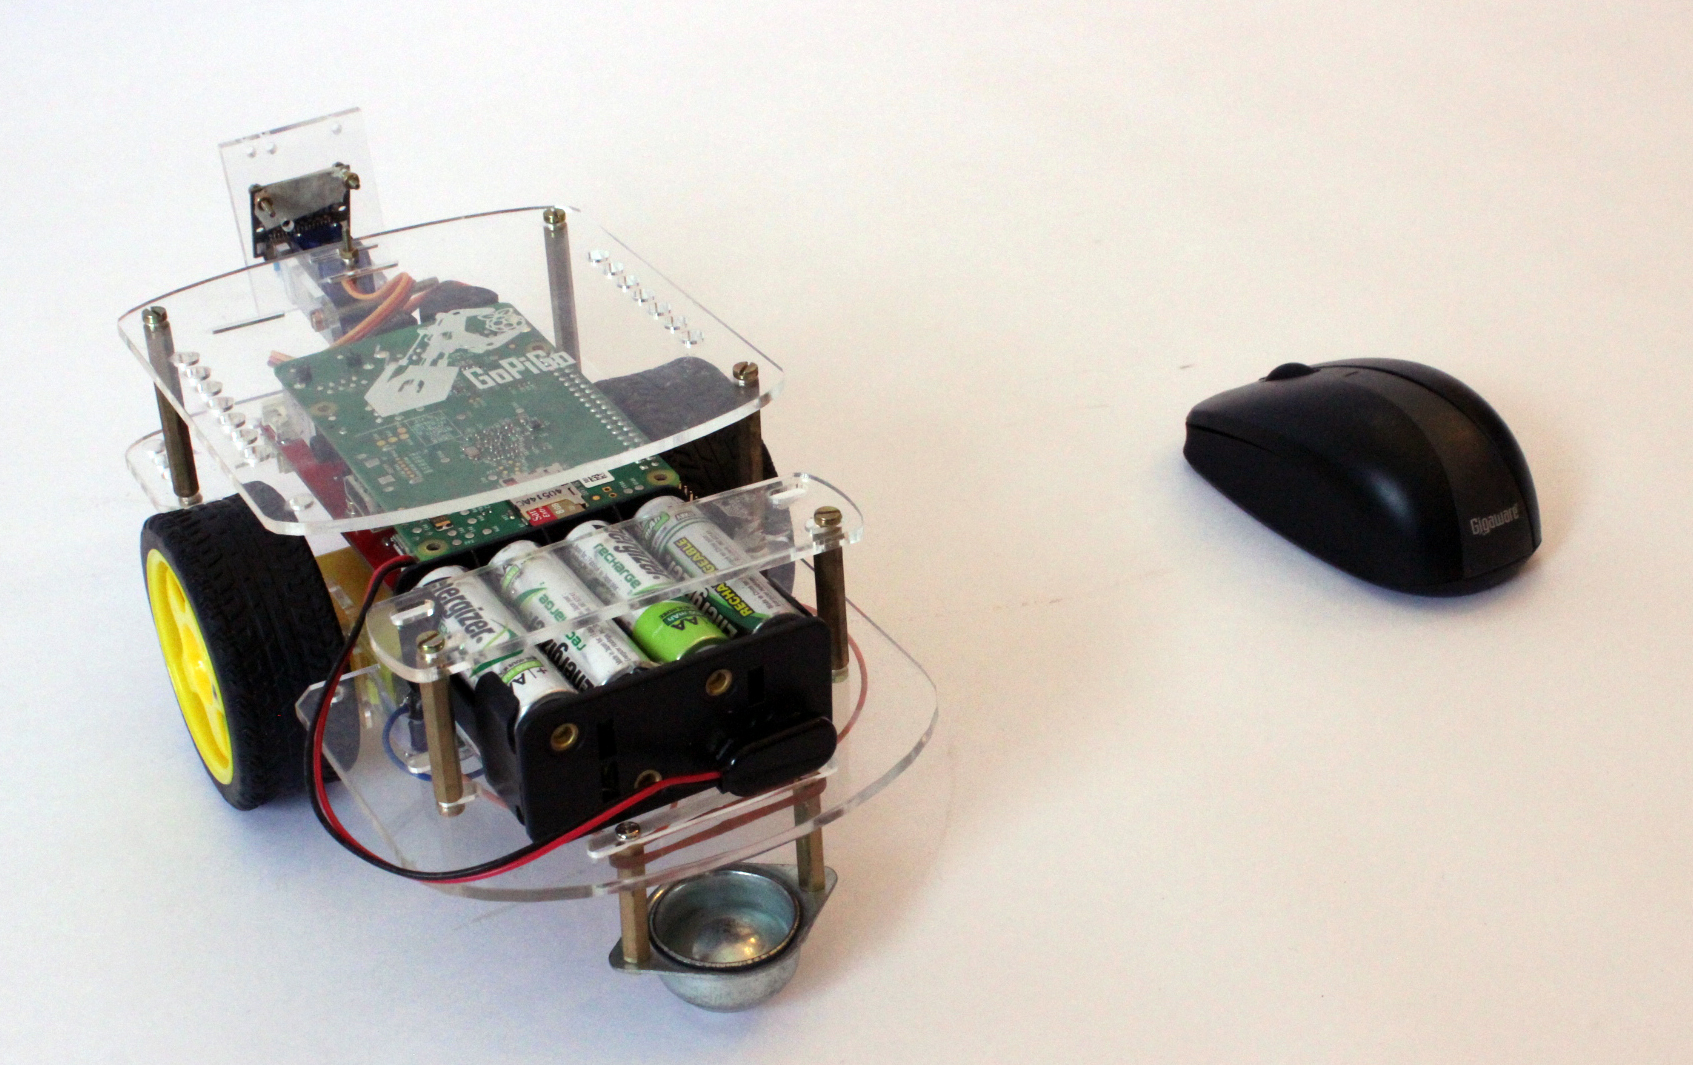 Mouse control of the Raspberry Pi Robot